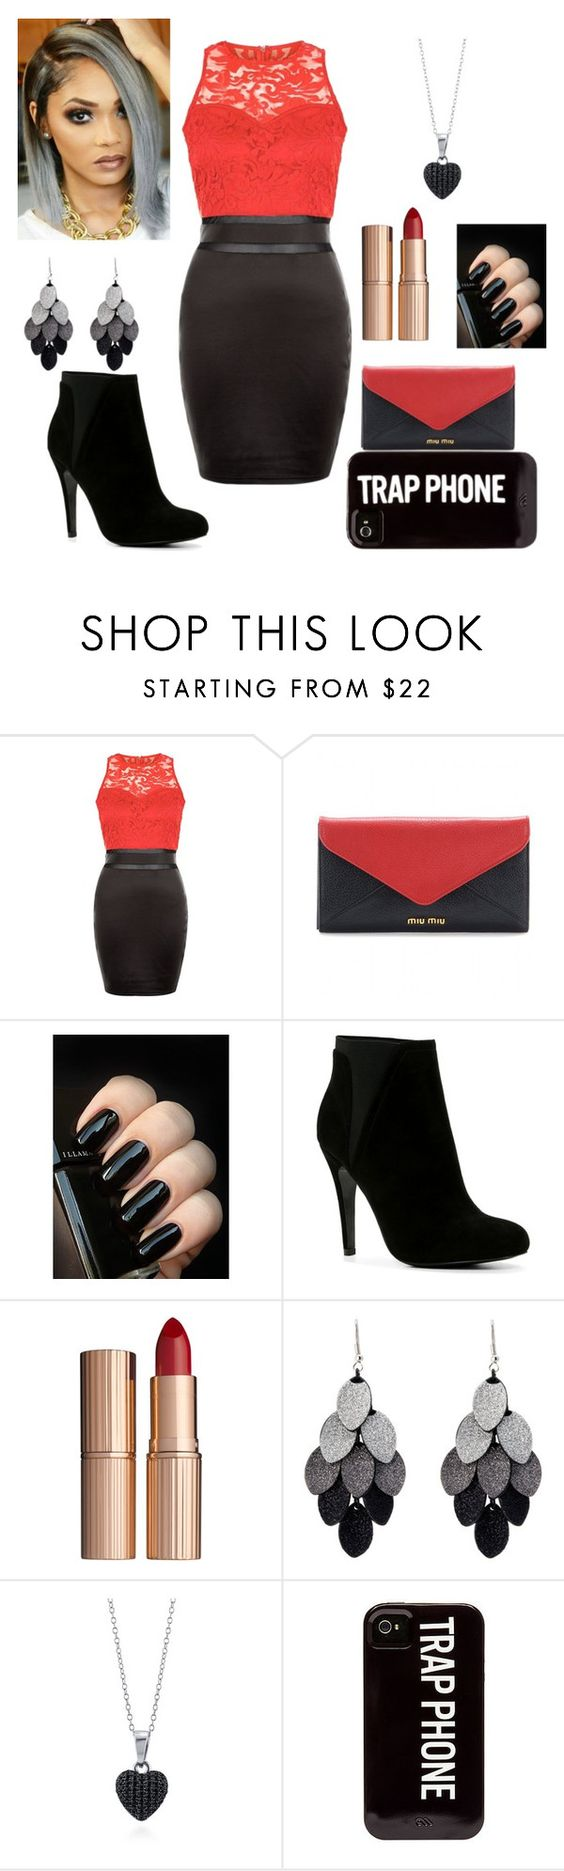 """""""Untitled #107"""" by nadswest98 ❤ liked on Polyvore featuring AX Paris, Miu Miu, ALDO, Charlotte Tilbury, Oasis, BERRICLE, women's clothing, women, female and woman"""